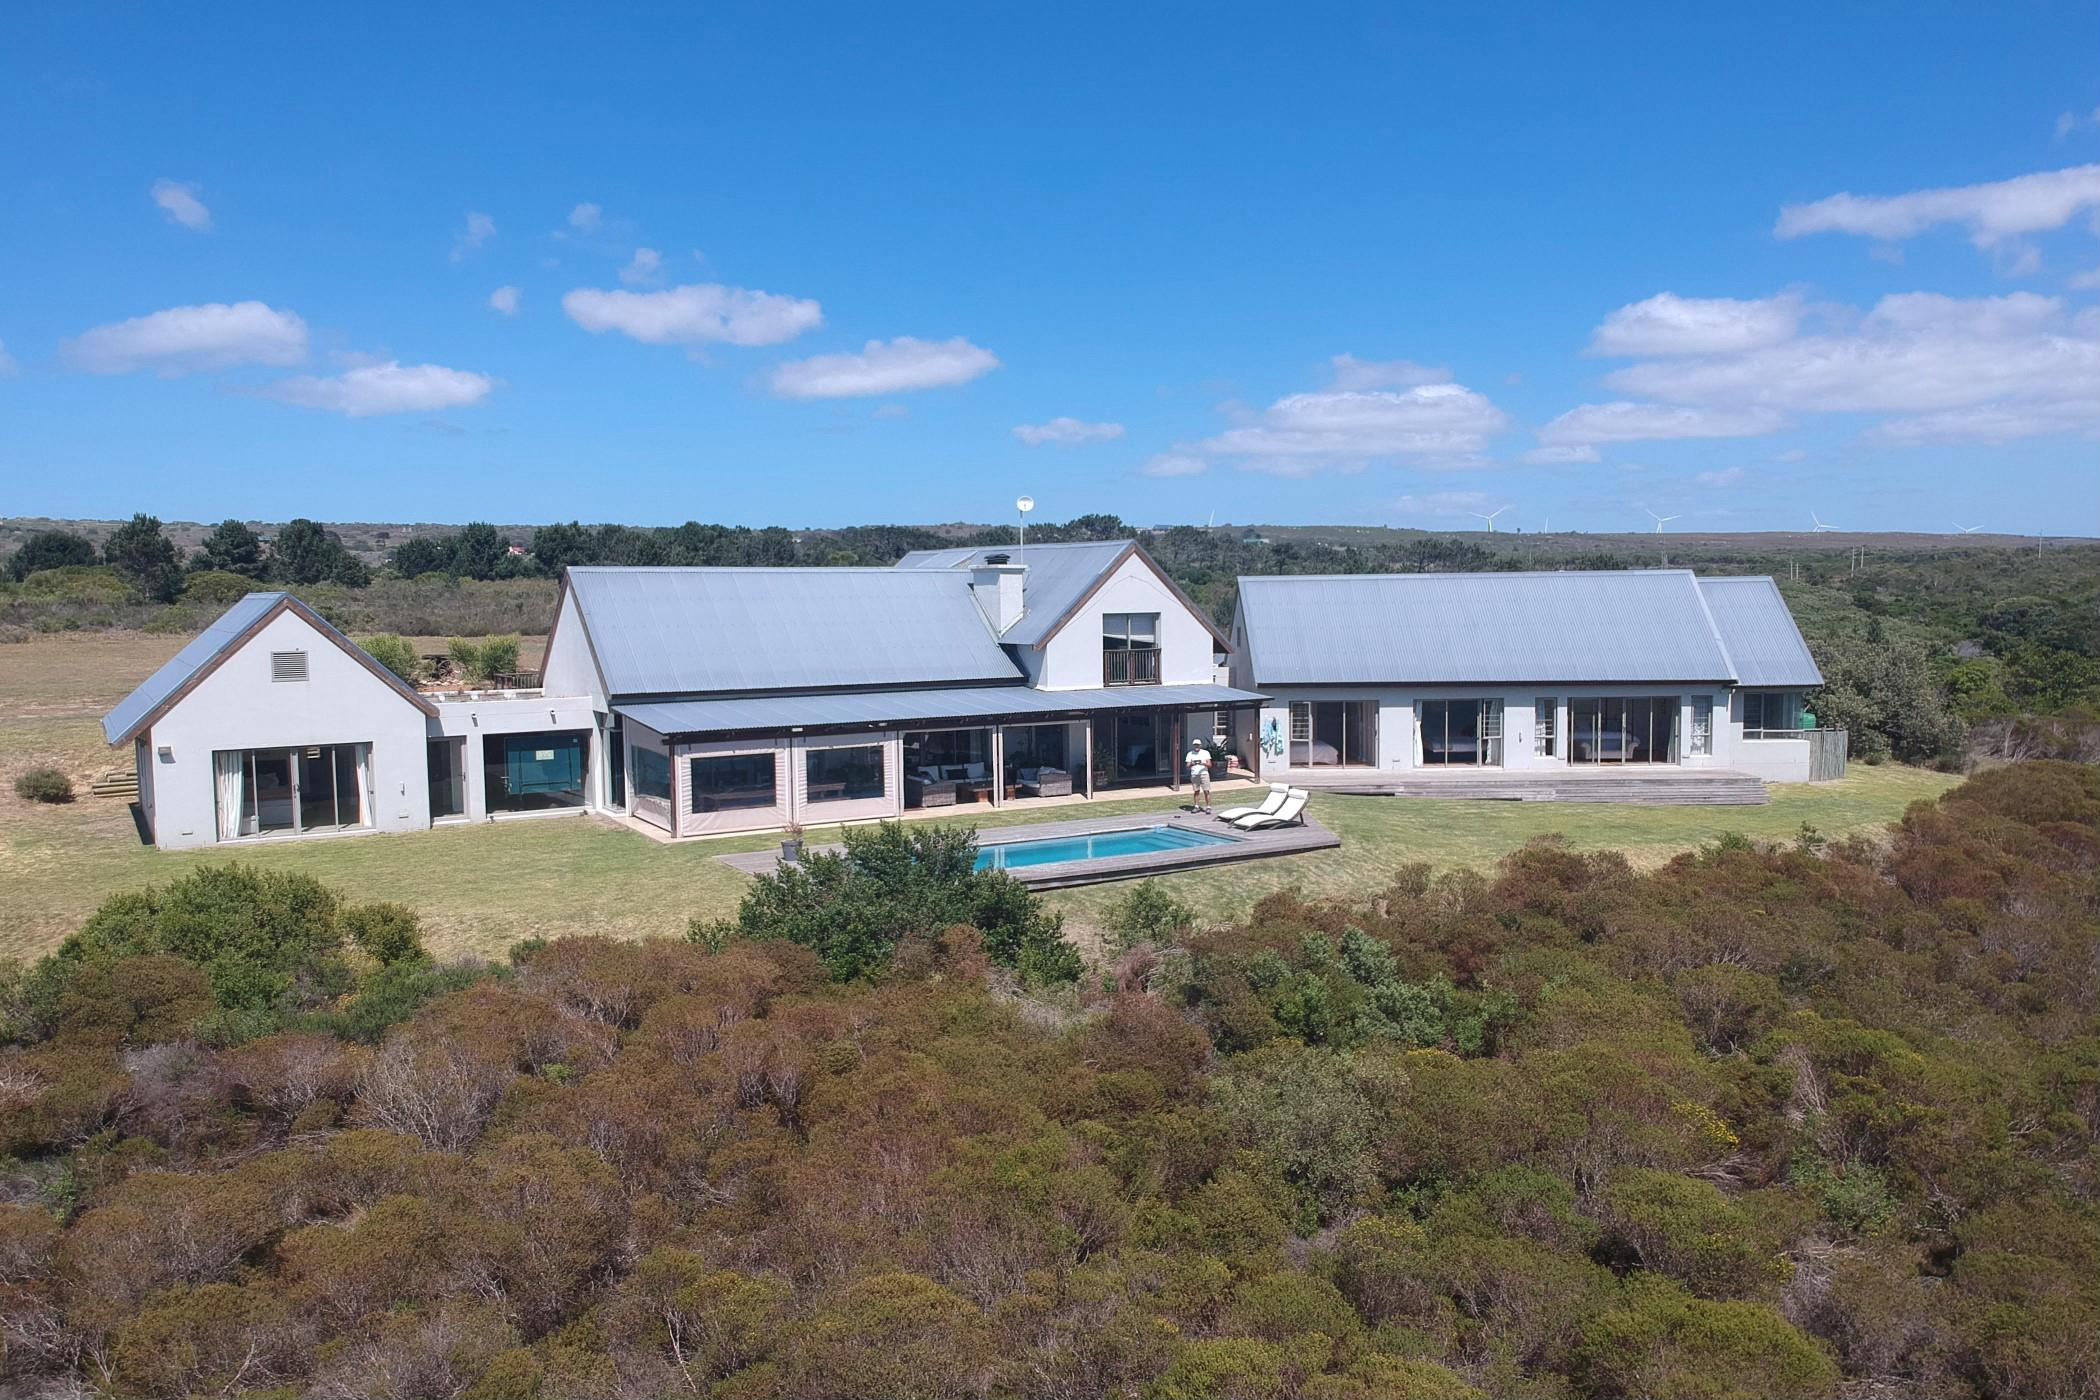 https://listing.pamgolding.co.za/images/properties/201811/1122373/H/1122373_H_21.jpg